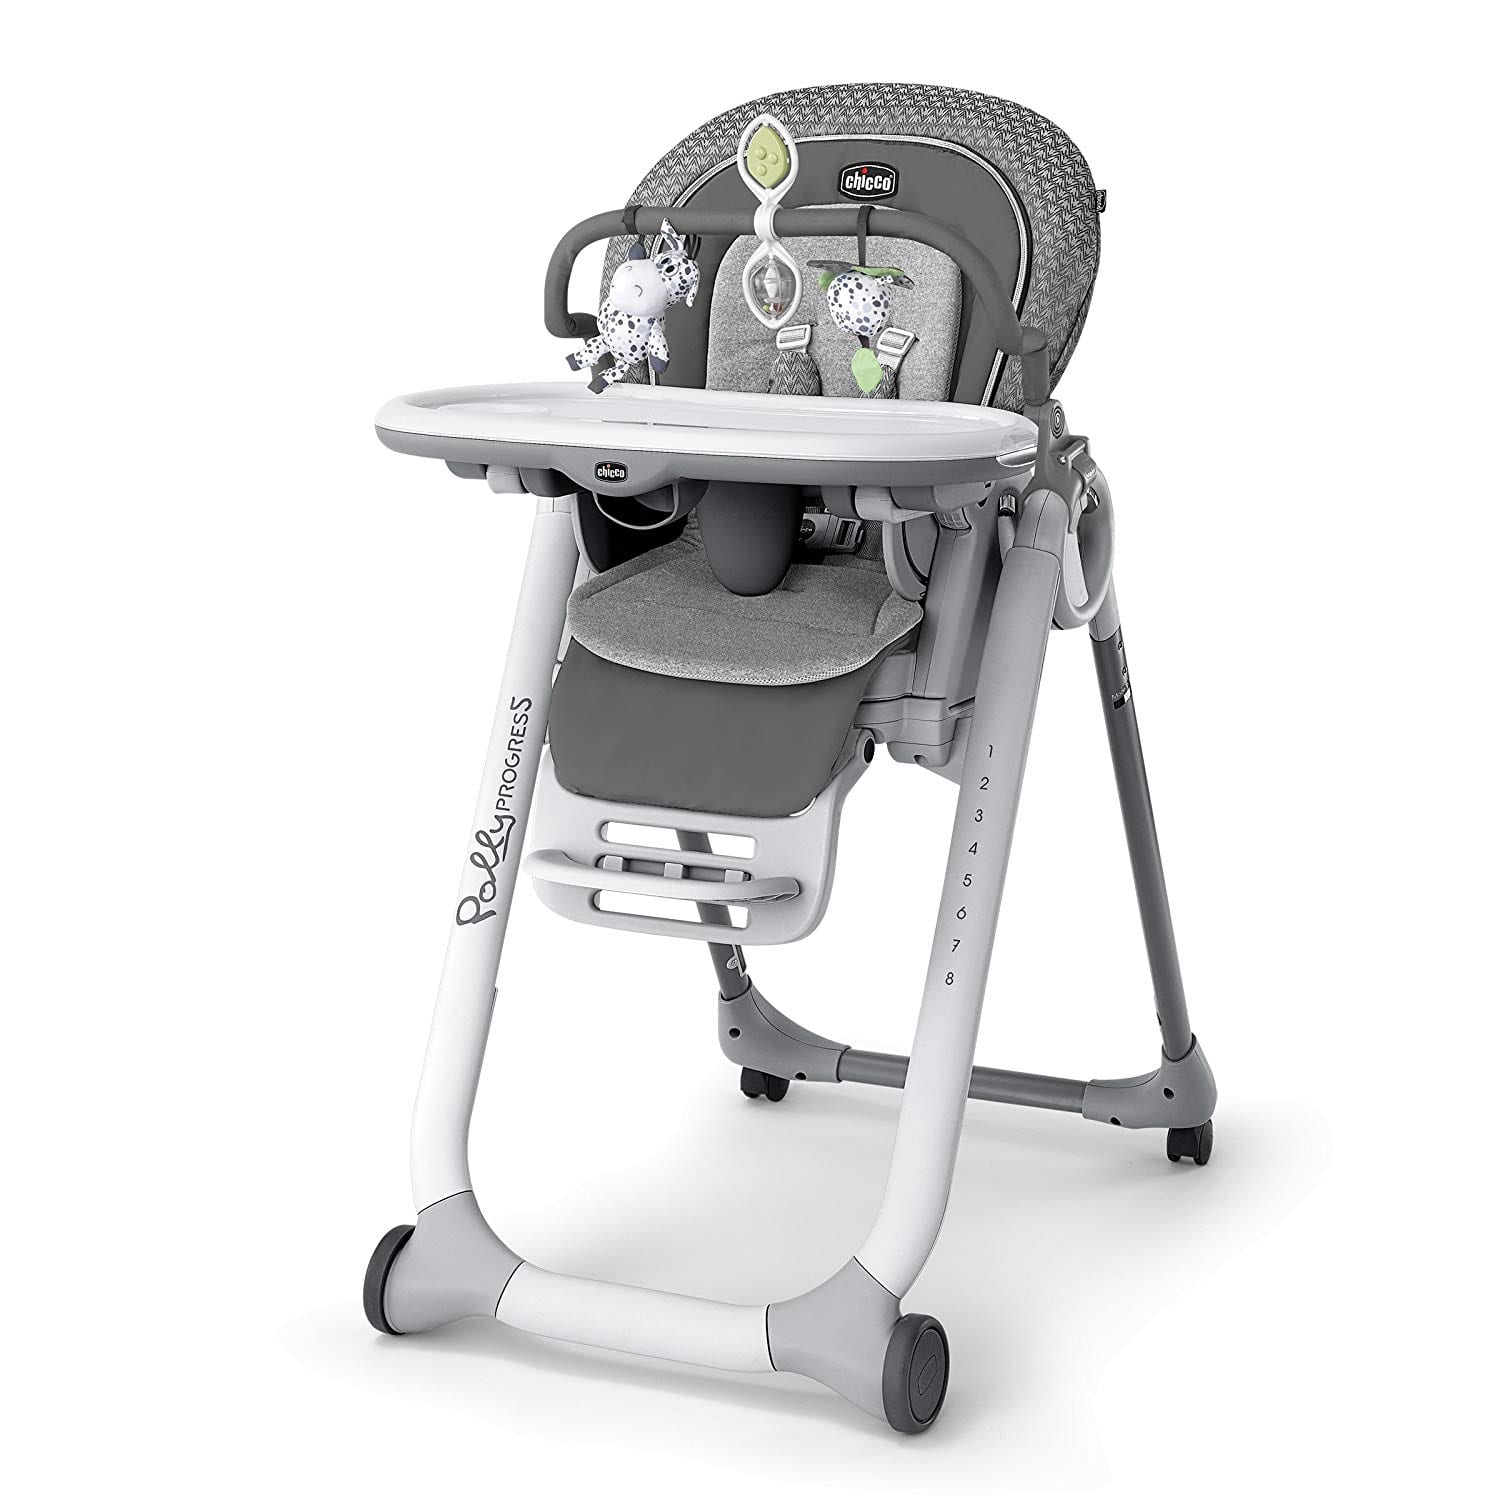 attachable high chair restaurant wood chairs the best for 2019 a look at what s hot new rookie moms